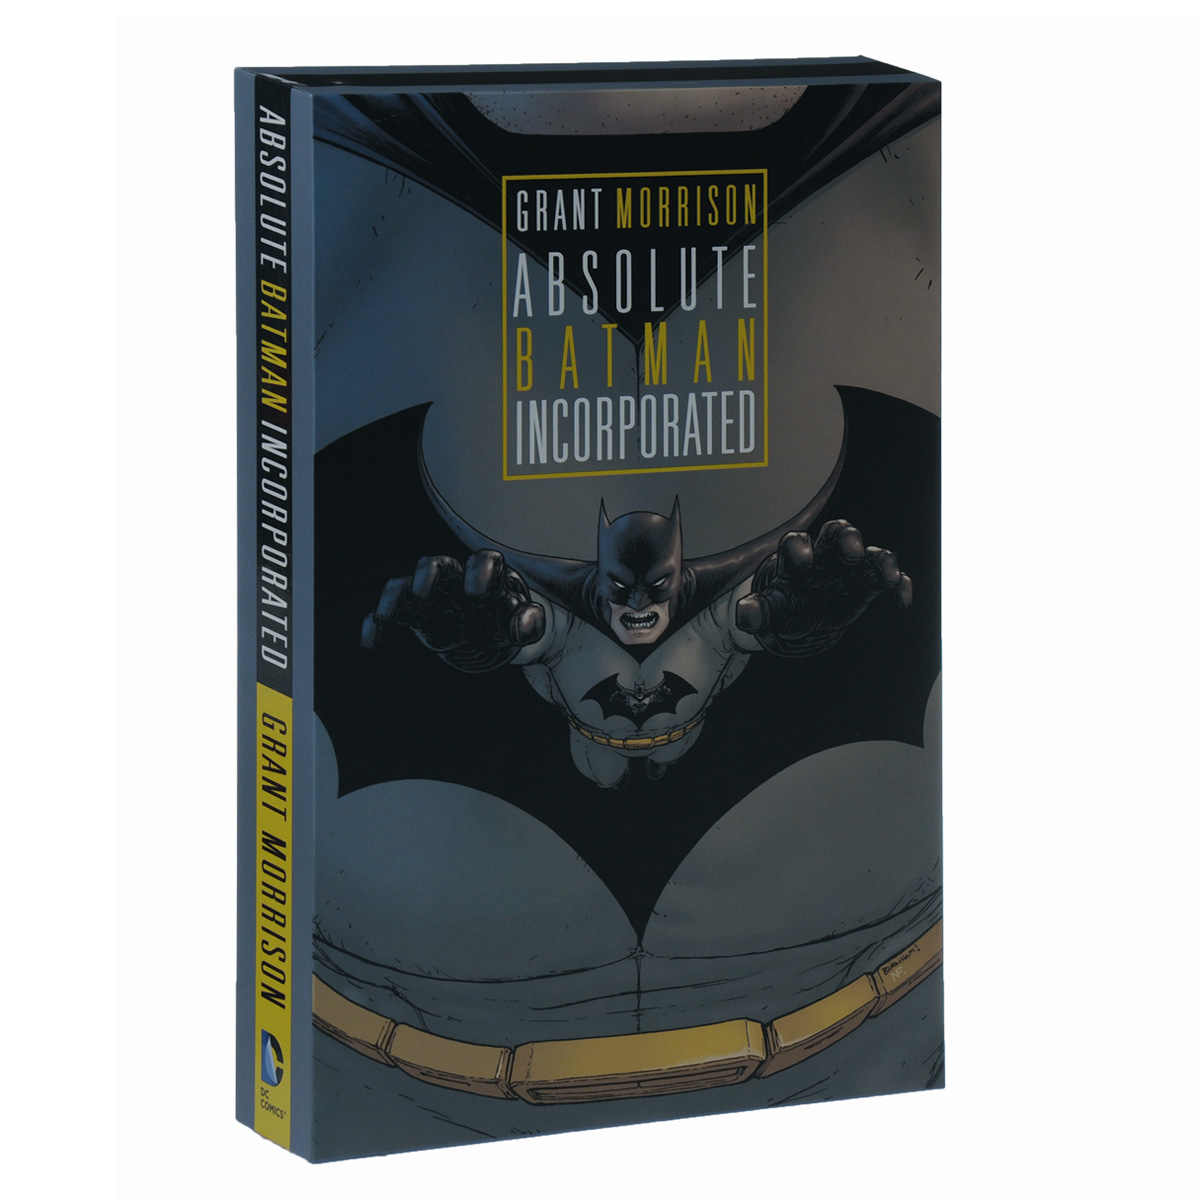 Absolute Batman Incorporated batman incorporated volume 1 deluxe